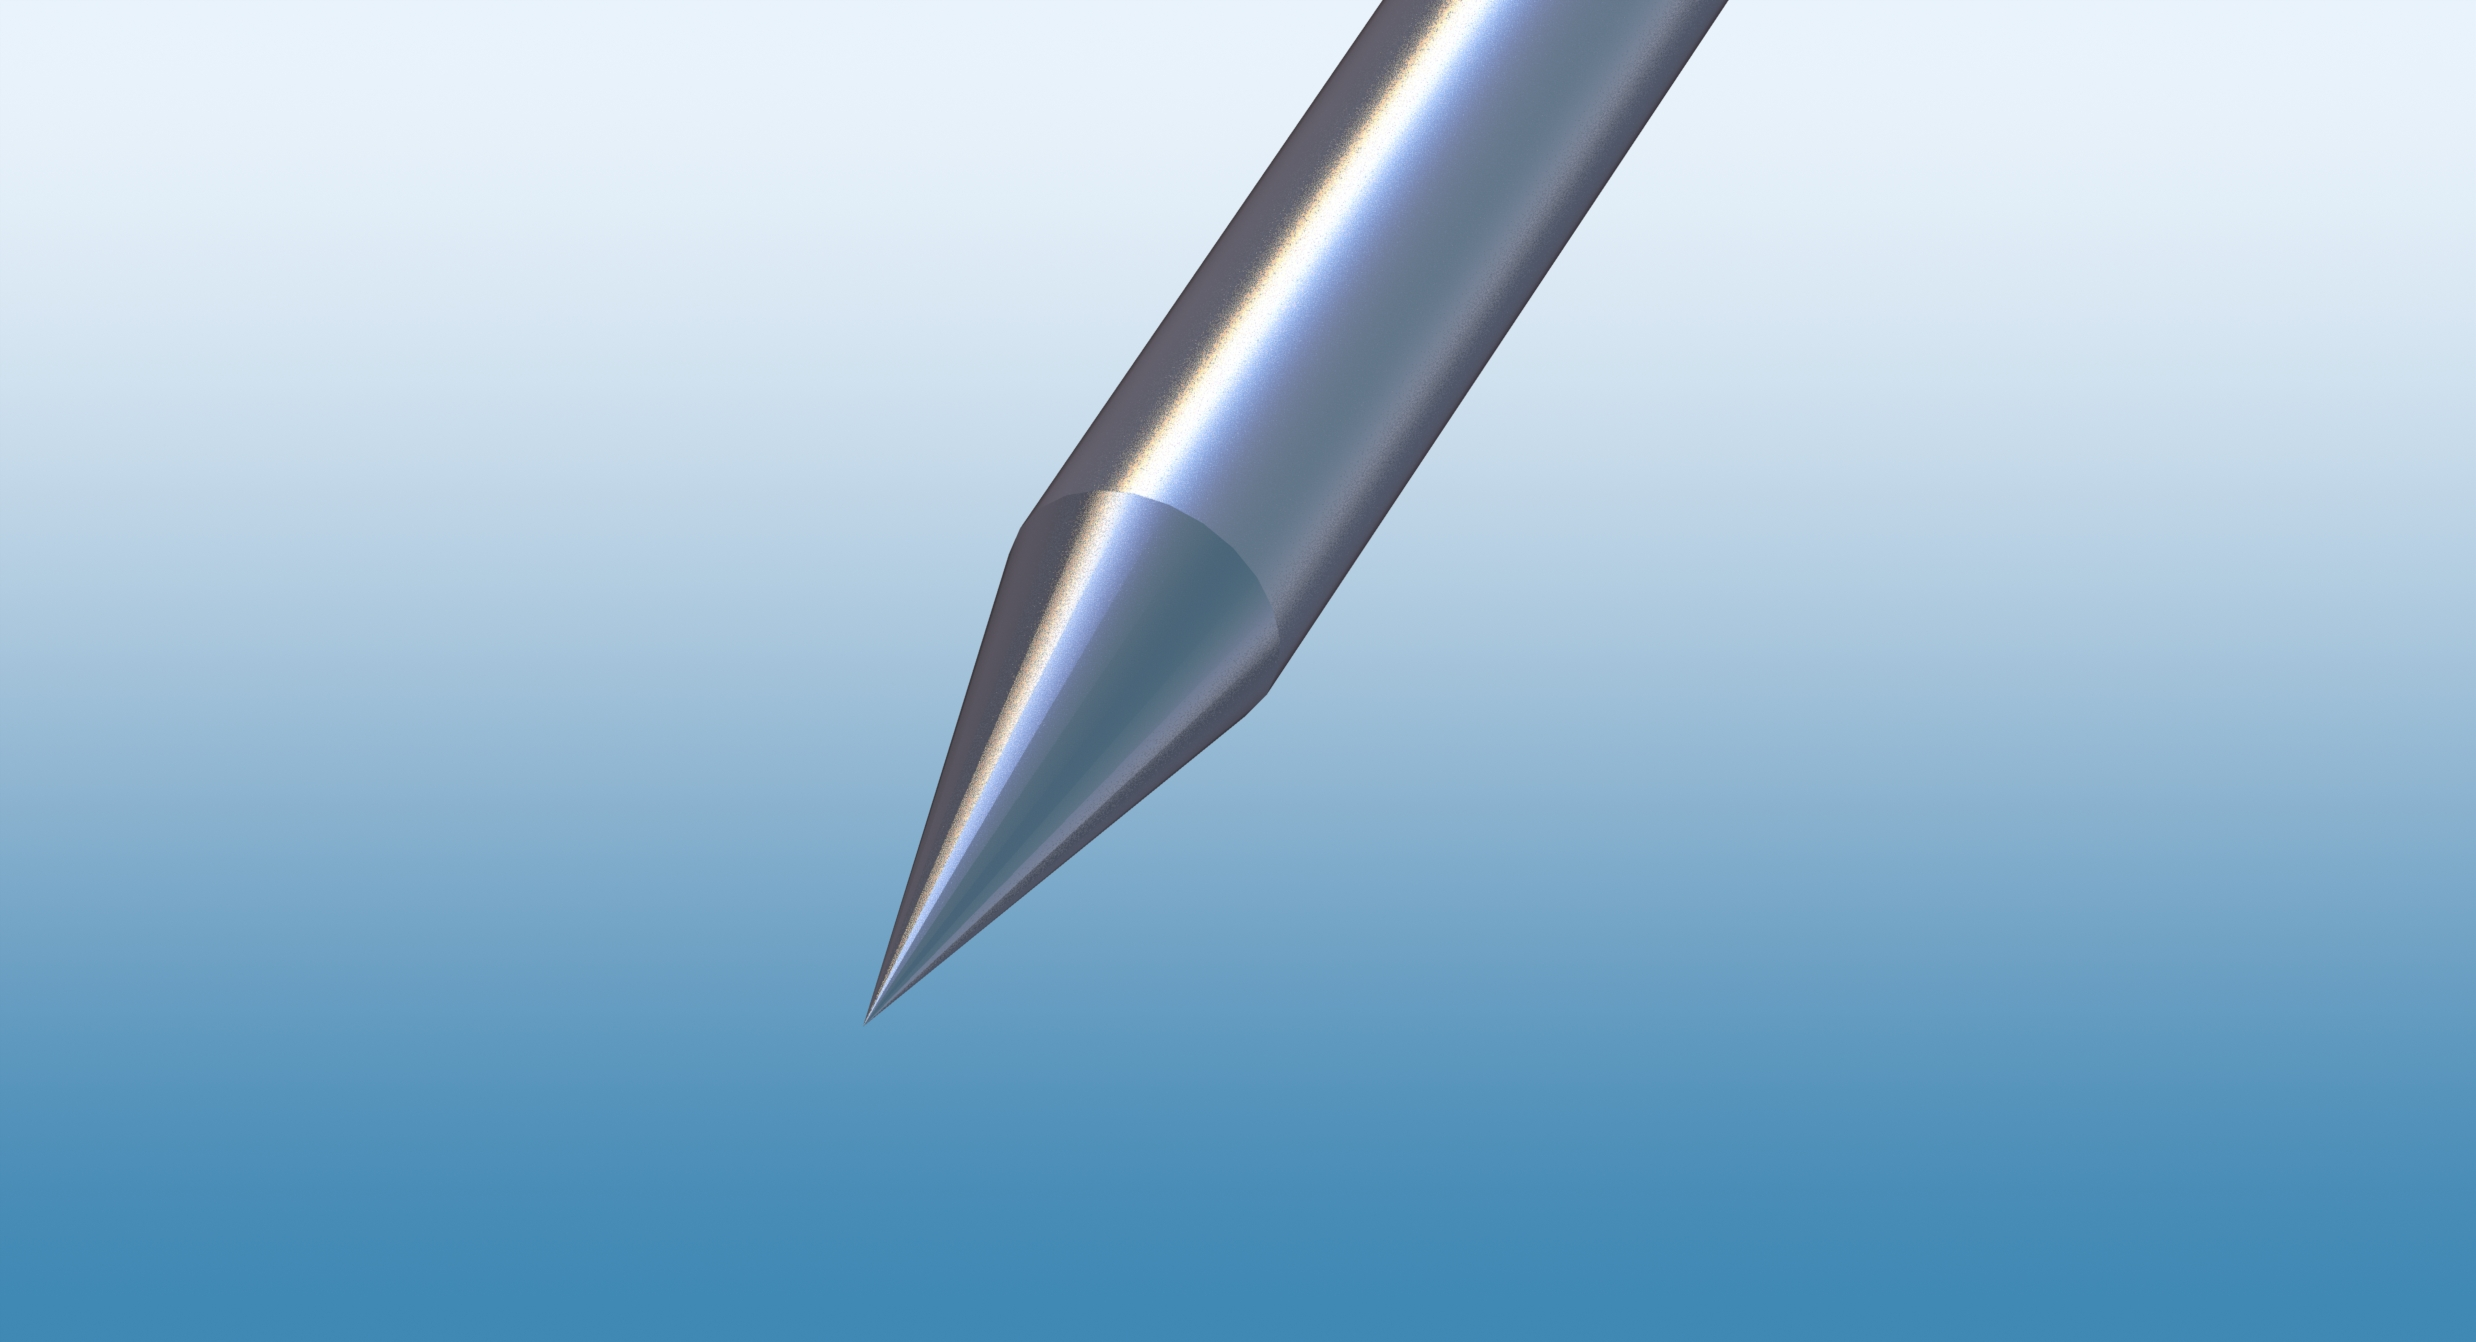 Pencil Point Needle Point